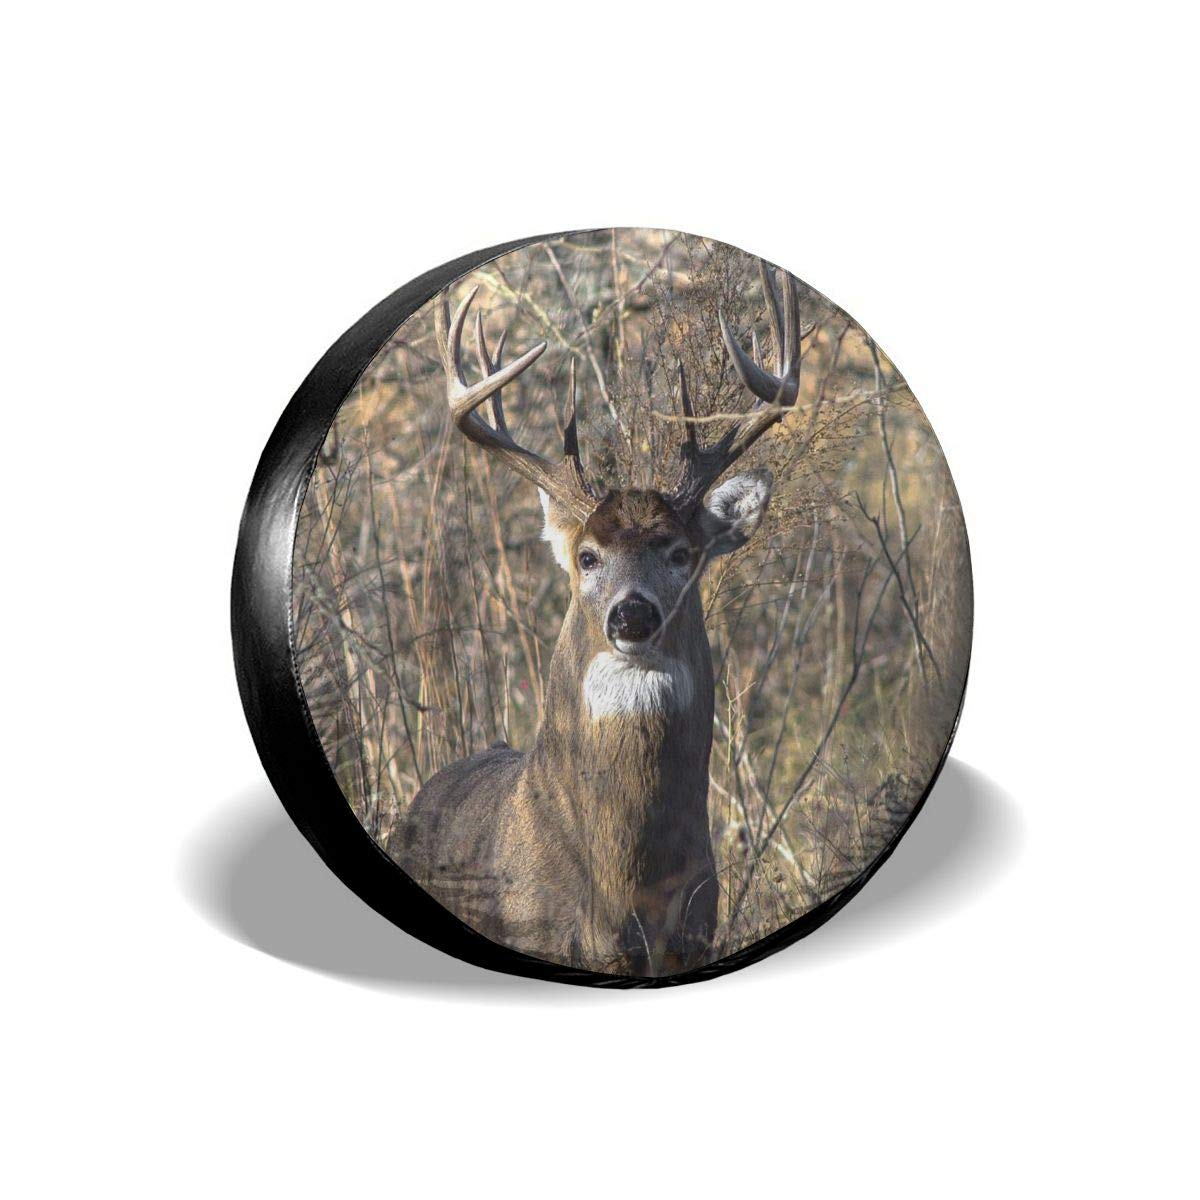 RV Trailer SUV and Many Vehicle Gulong~a Whitetail Deer Tire Cover Polyester Waterproof Dust-Proof Universal Spare Wheel Tire Cover Fit for Jeep